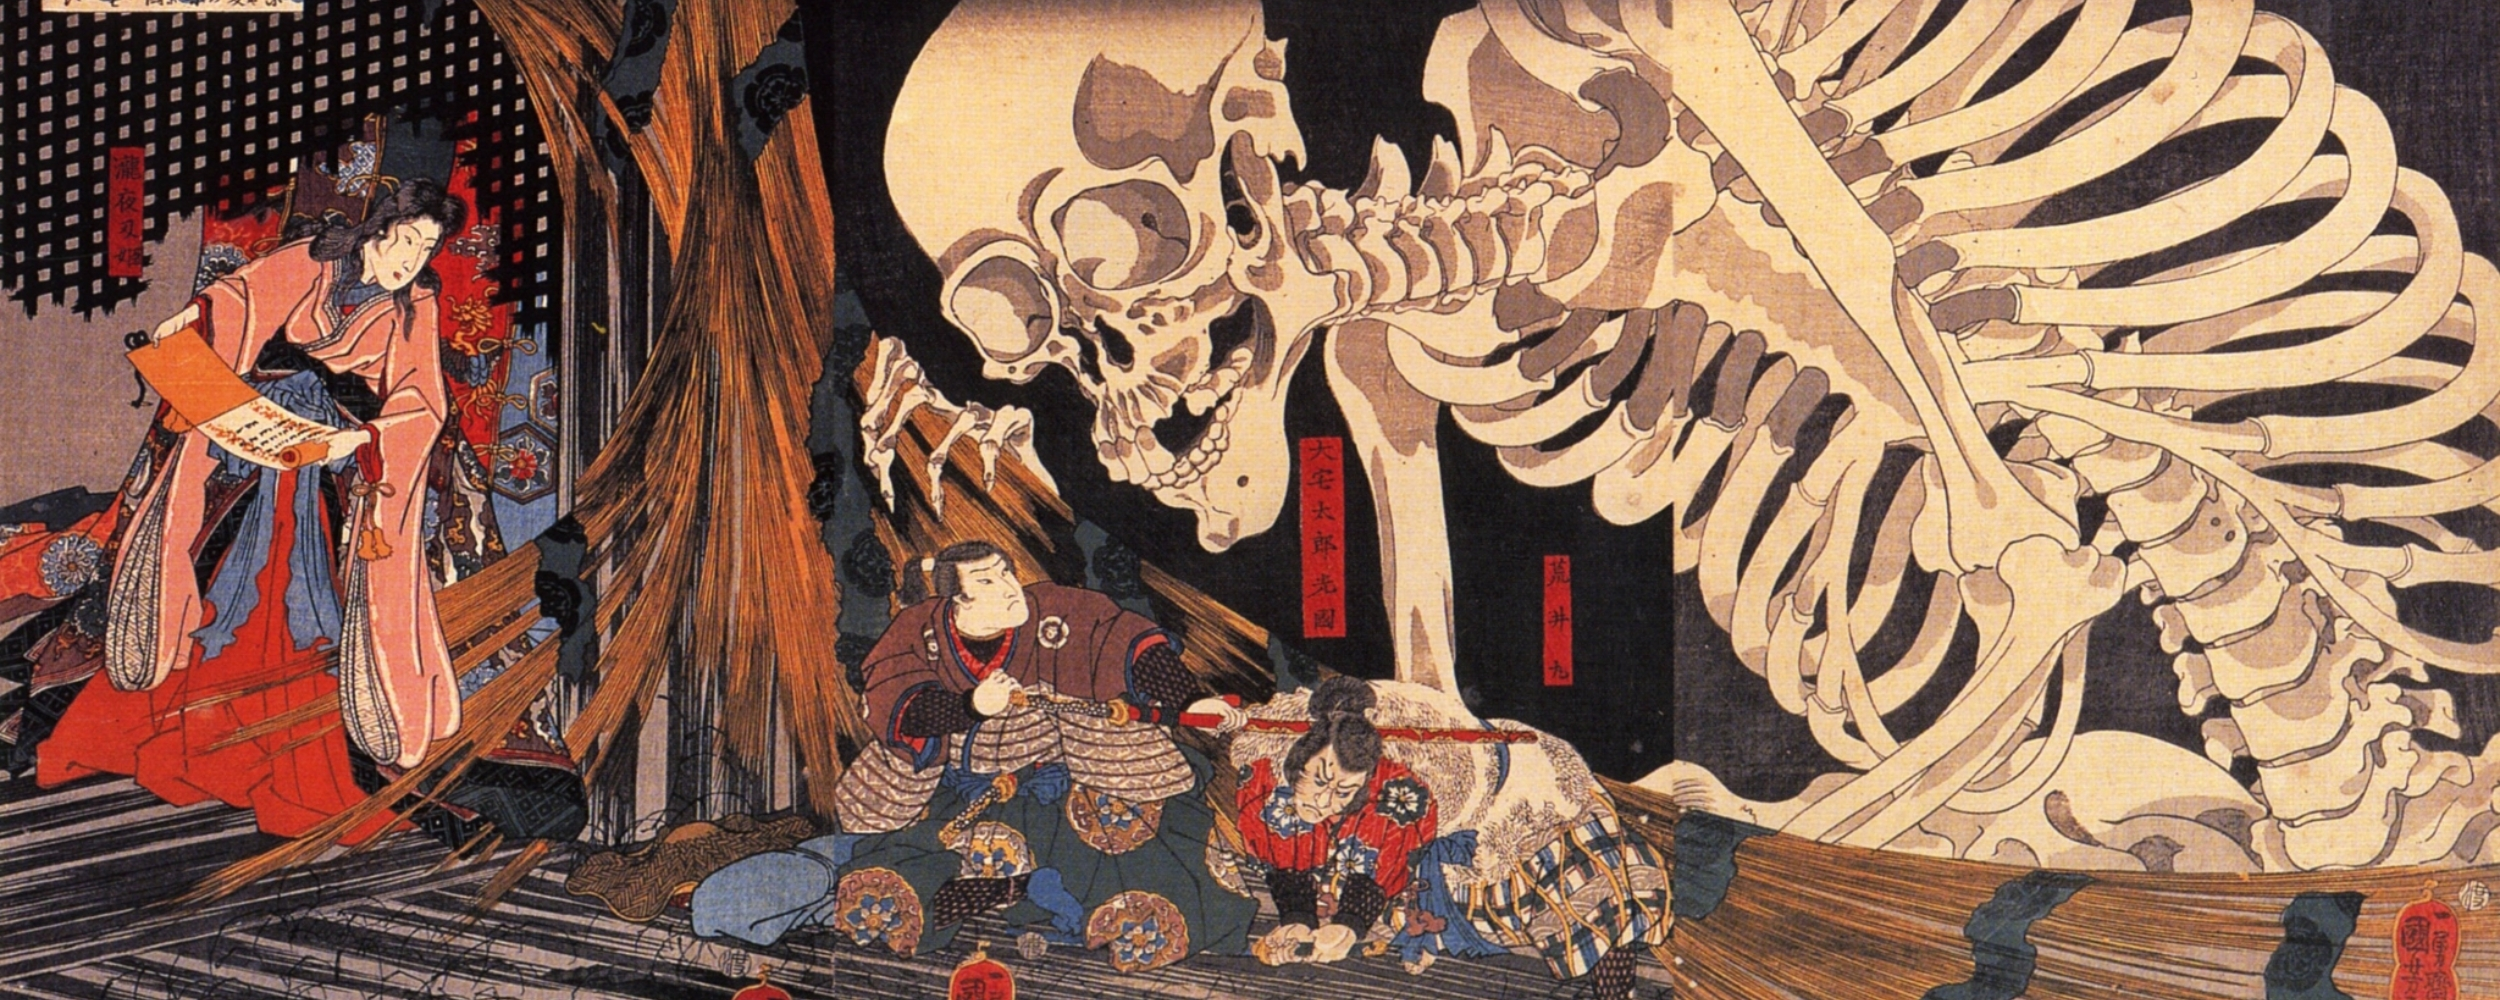 Mitsukuni Defying The Skeleton Spectre Invoked By Princess Takiyasha By Utagawa Kuniyoshi 1346613609 Org